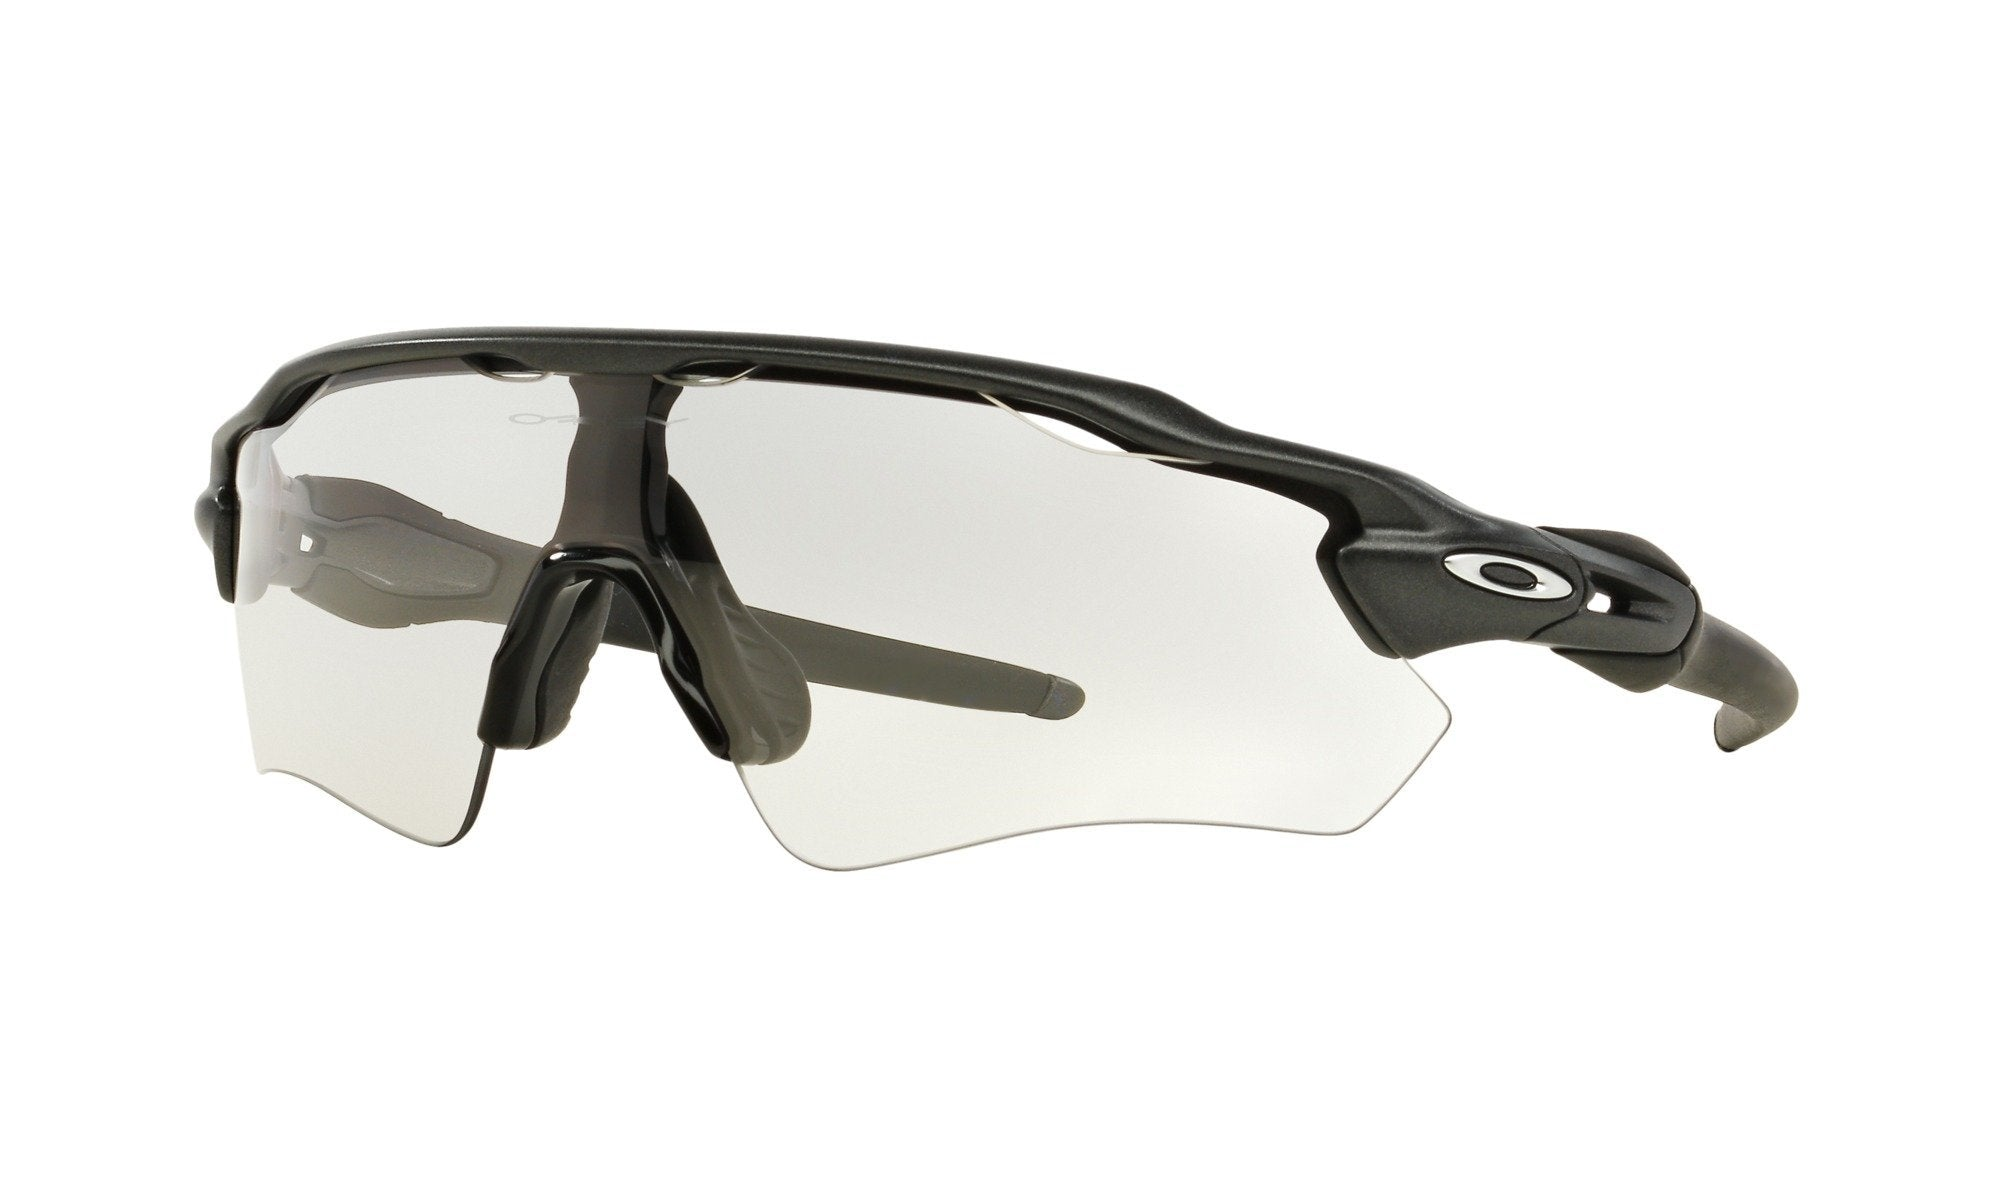 d89b6a4380 Oakley Radar EV Path Steel w Clear Photochromic Lens